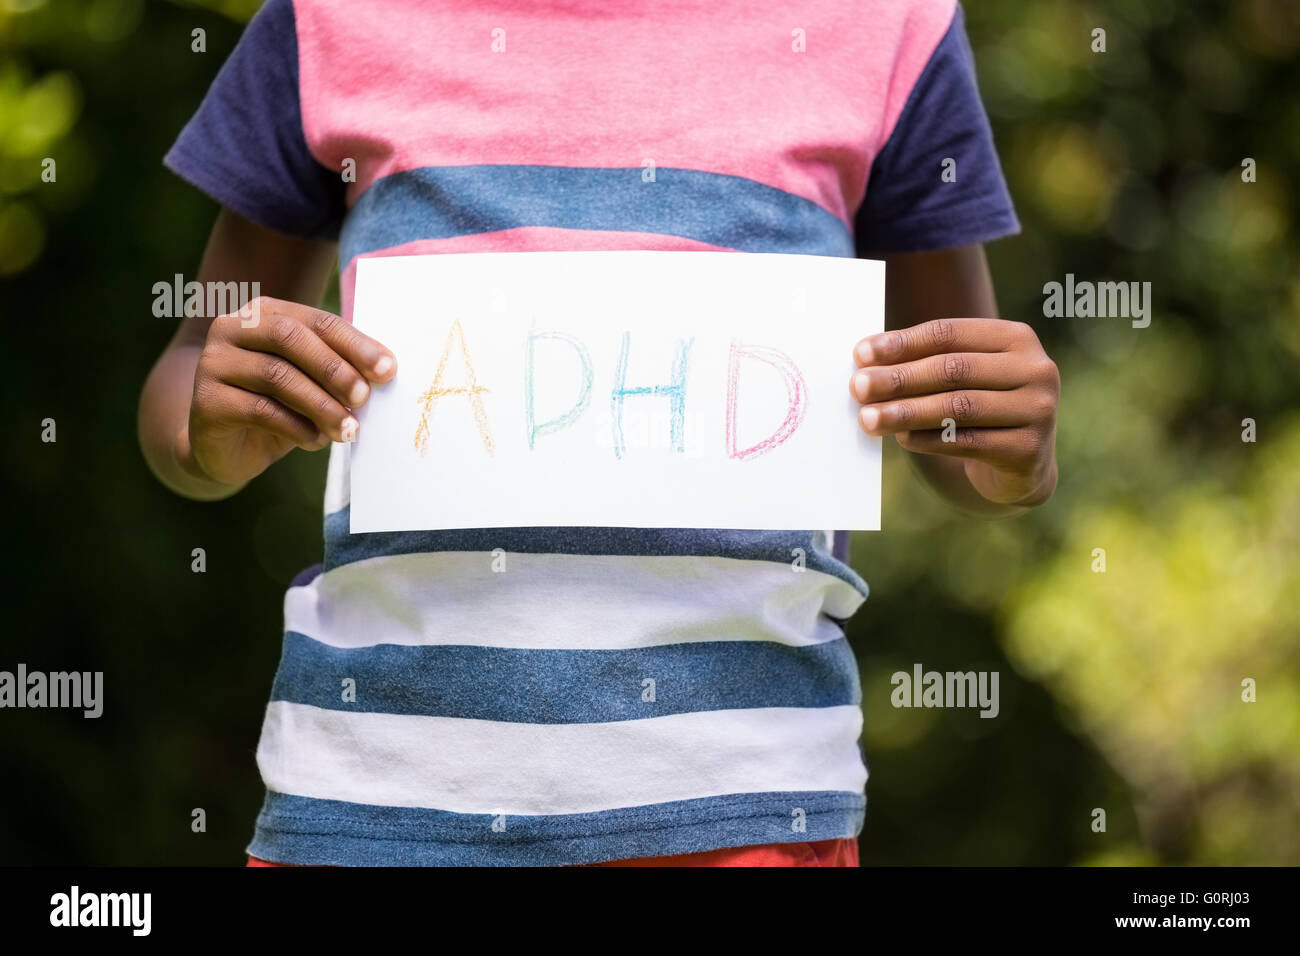 Boy showing a poster with ADHD - Stock Image